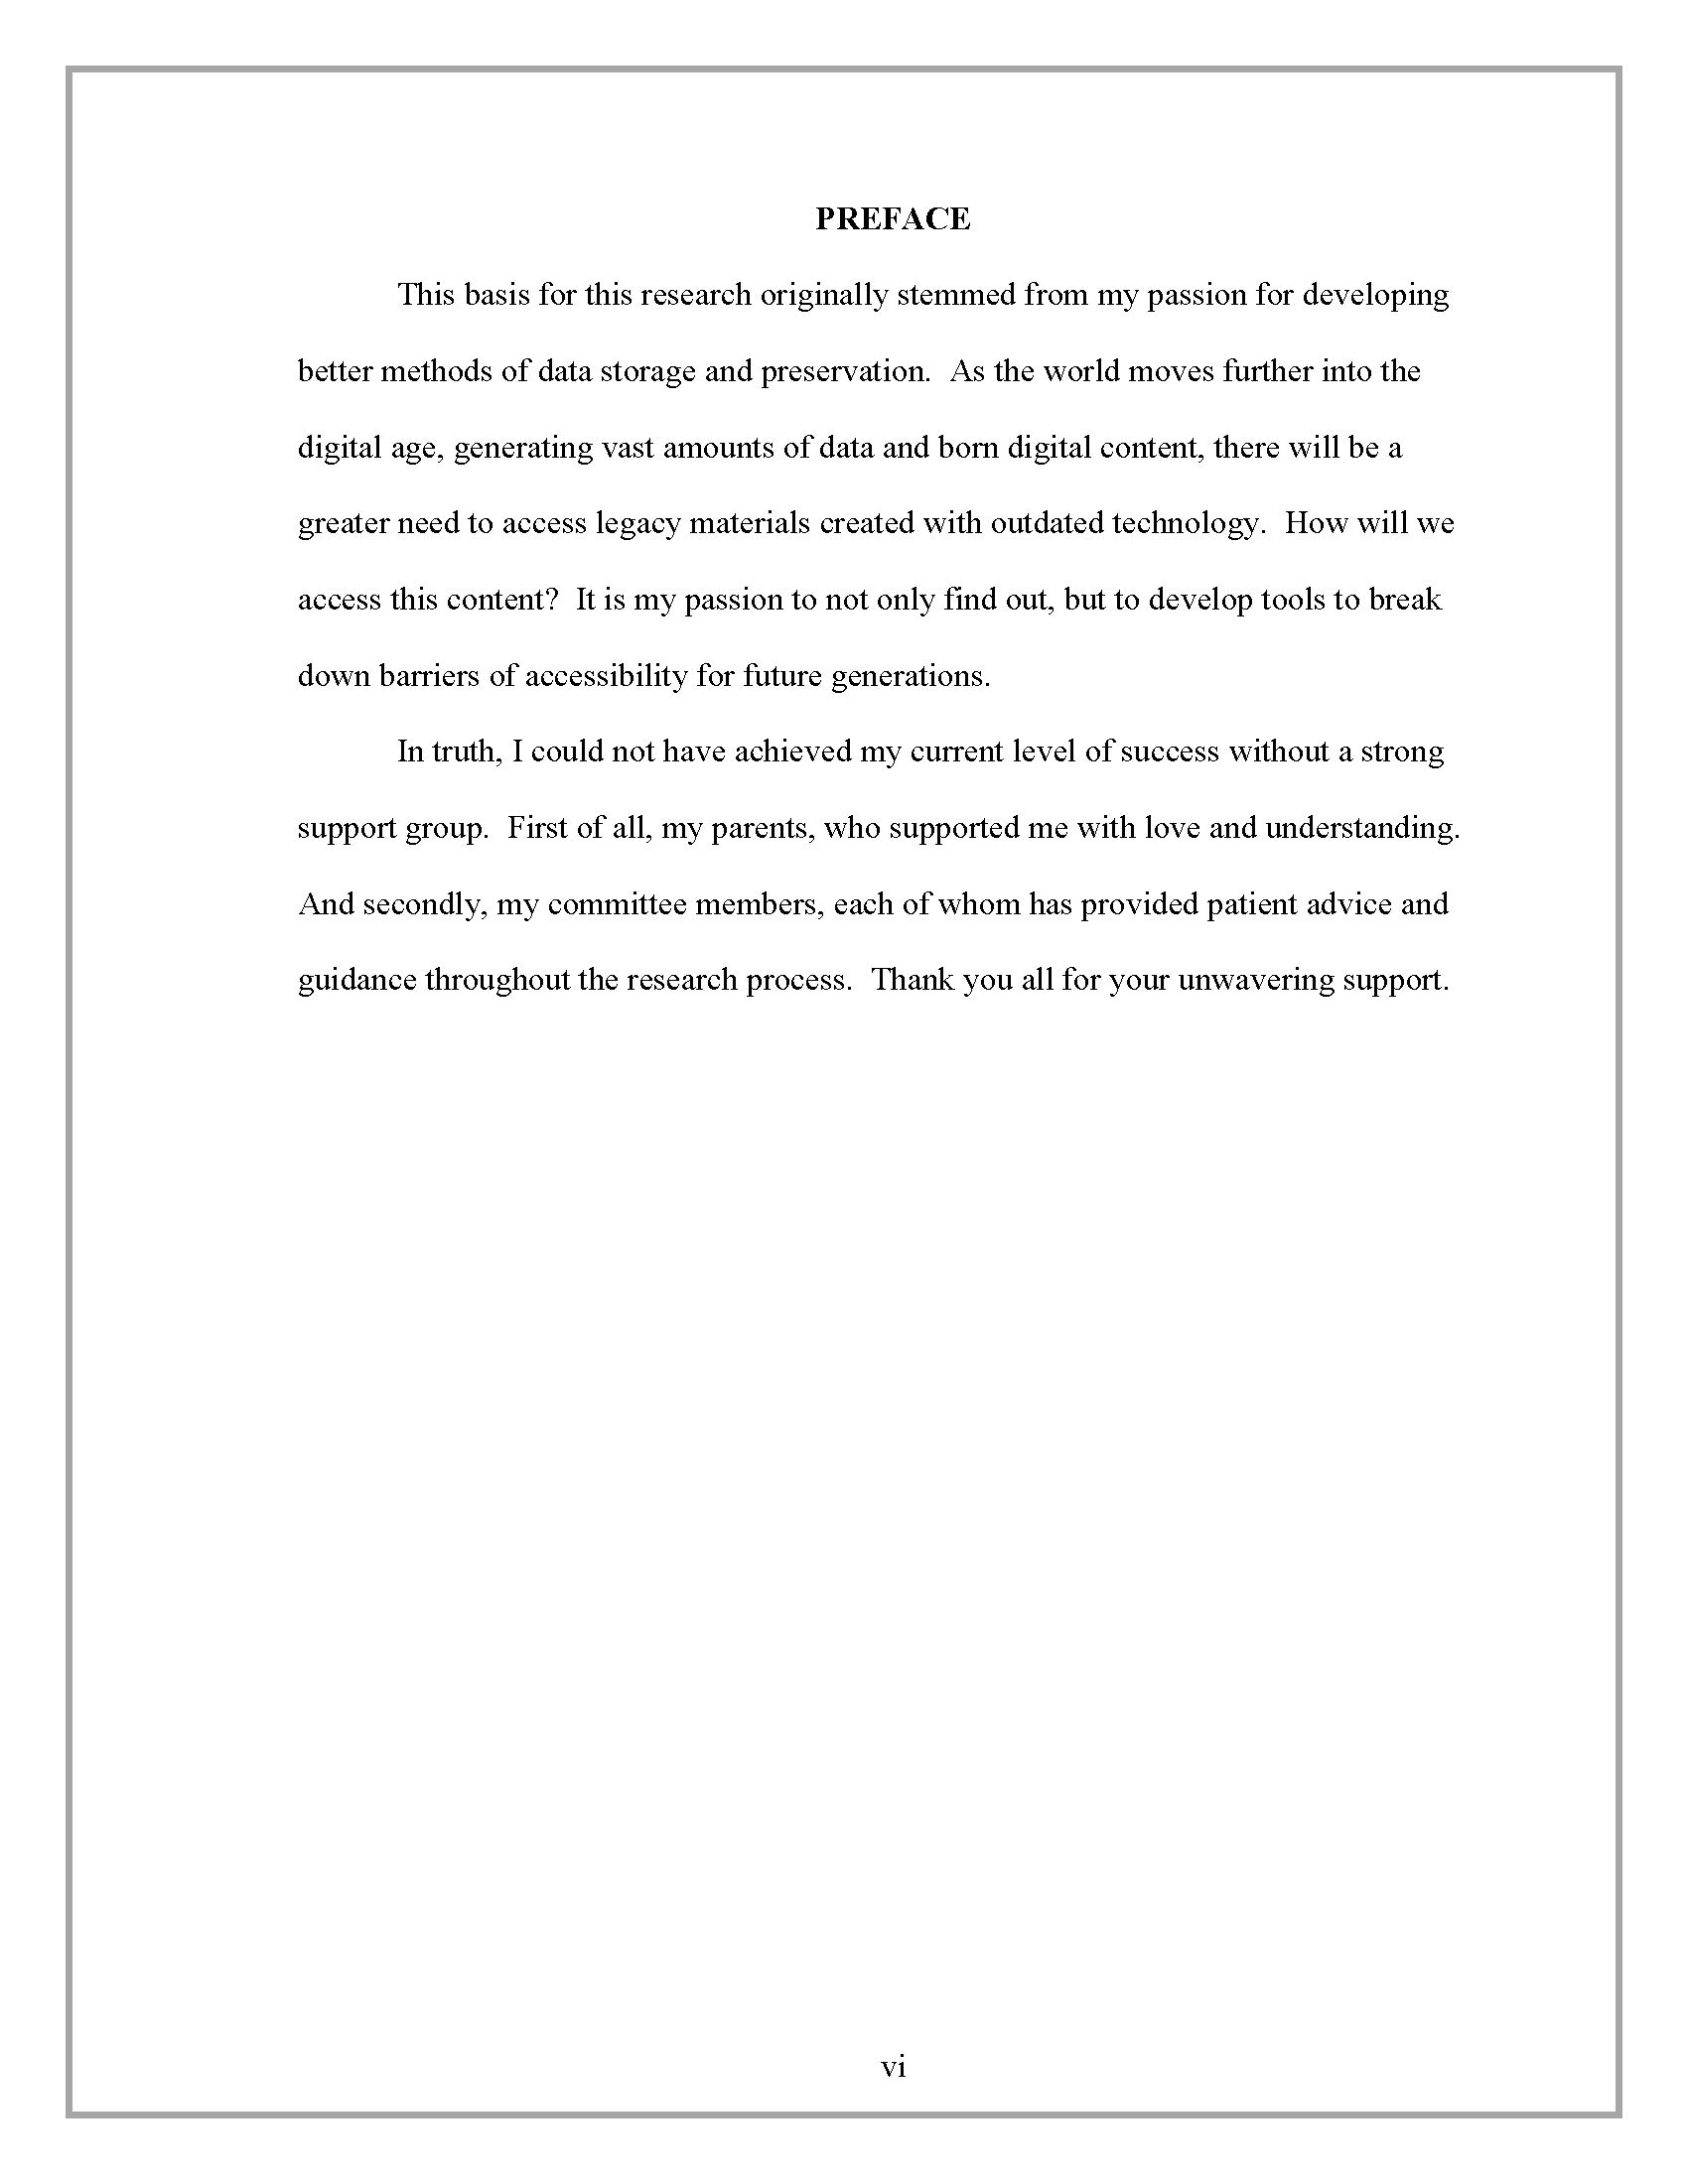 High School Persuasive Essay How It Should Look Great Gatsby Essay Thesis also High School Senior Essay Preface  Thesis And Dissertation  Research Guides At Sam Houston  Essay On The Yellow Wallpaper